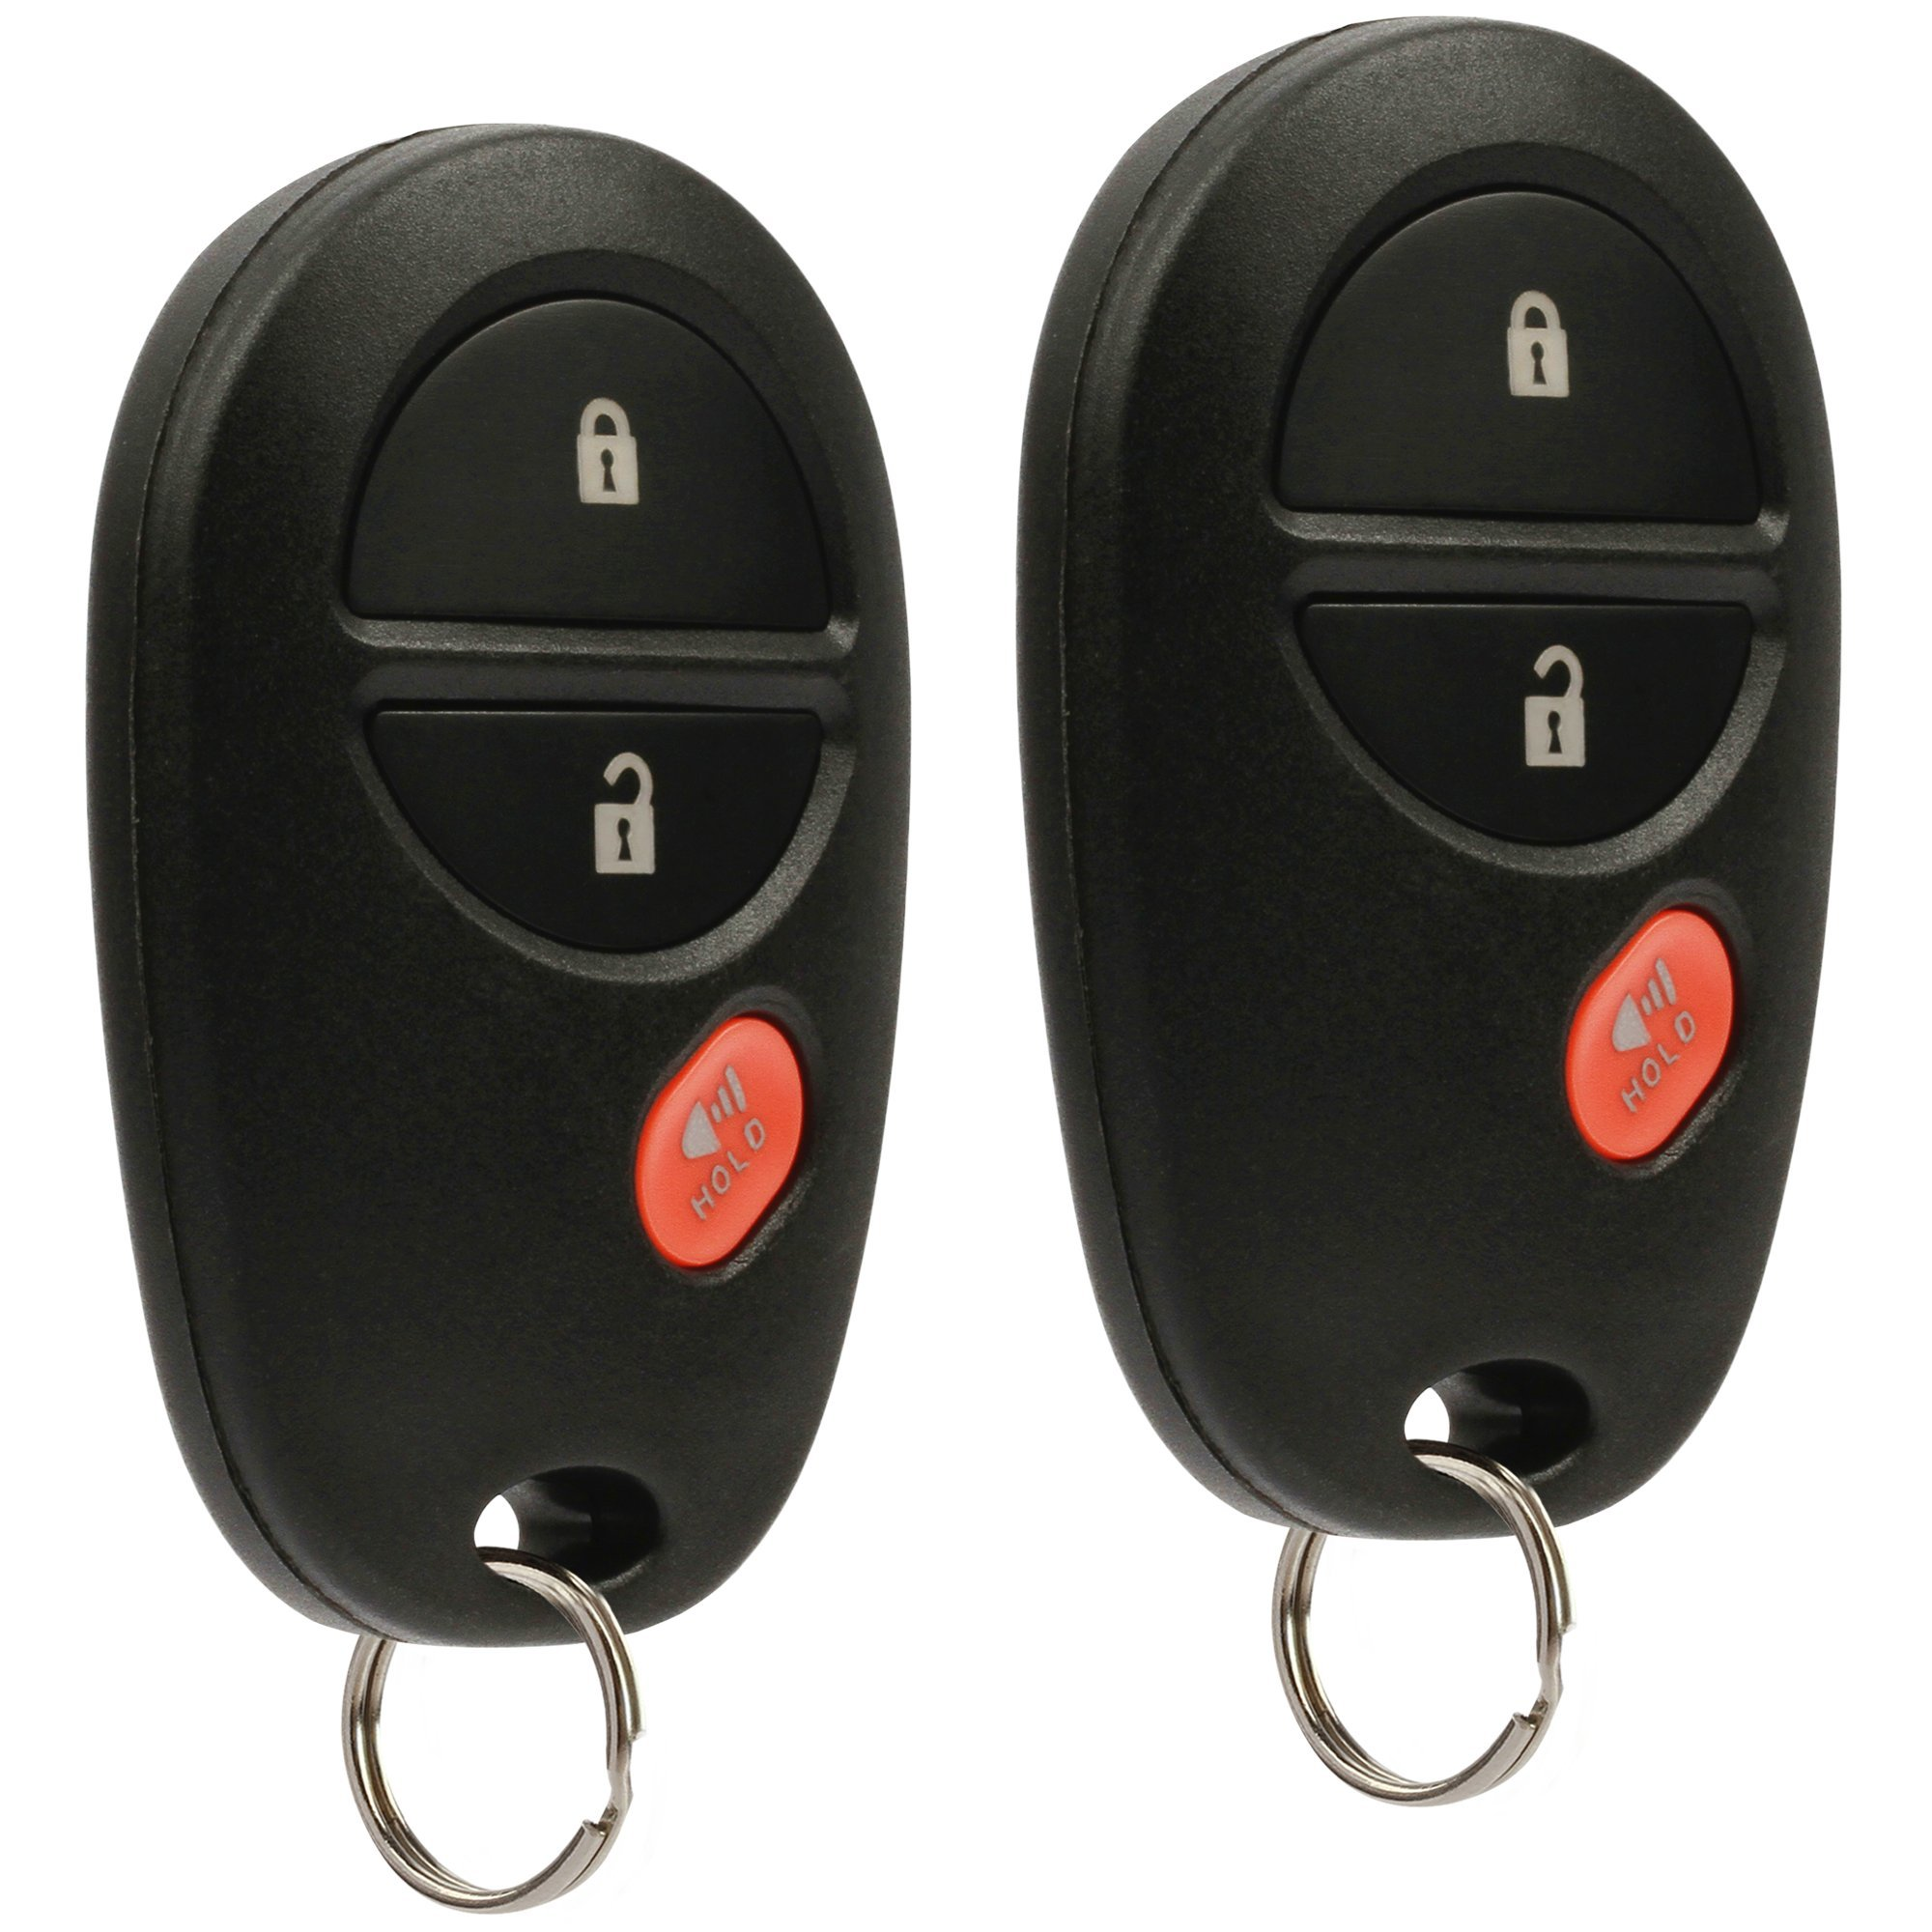 Key Fob Keyless Entry Remote fits Toyota Tacoma Tundra Sienna Sequoia Highlander (GQ43VT20T), Set of 2 by USARemote